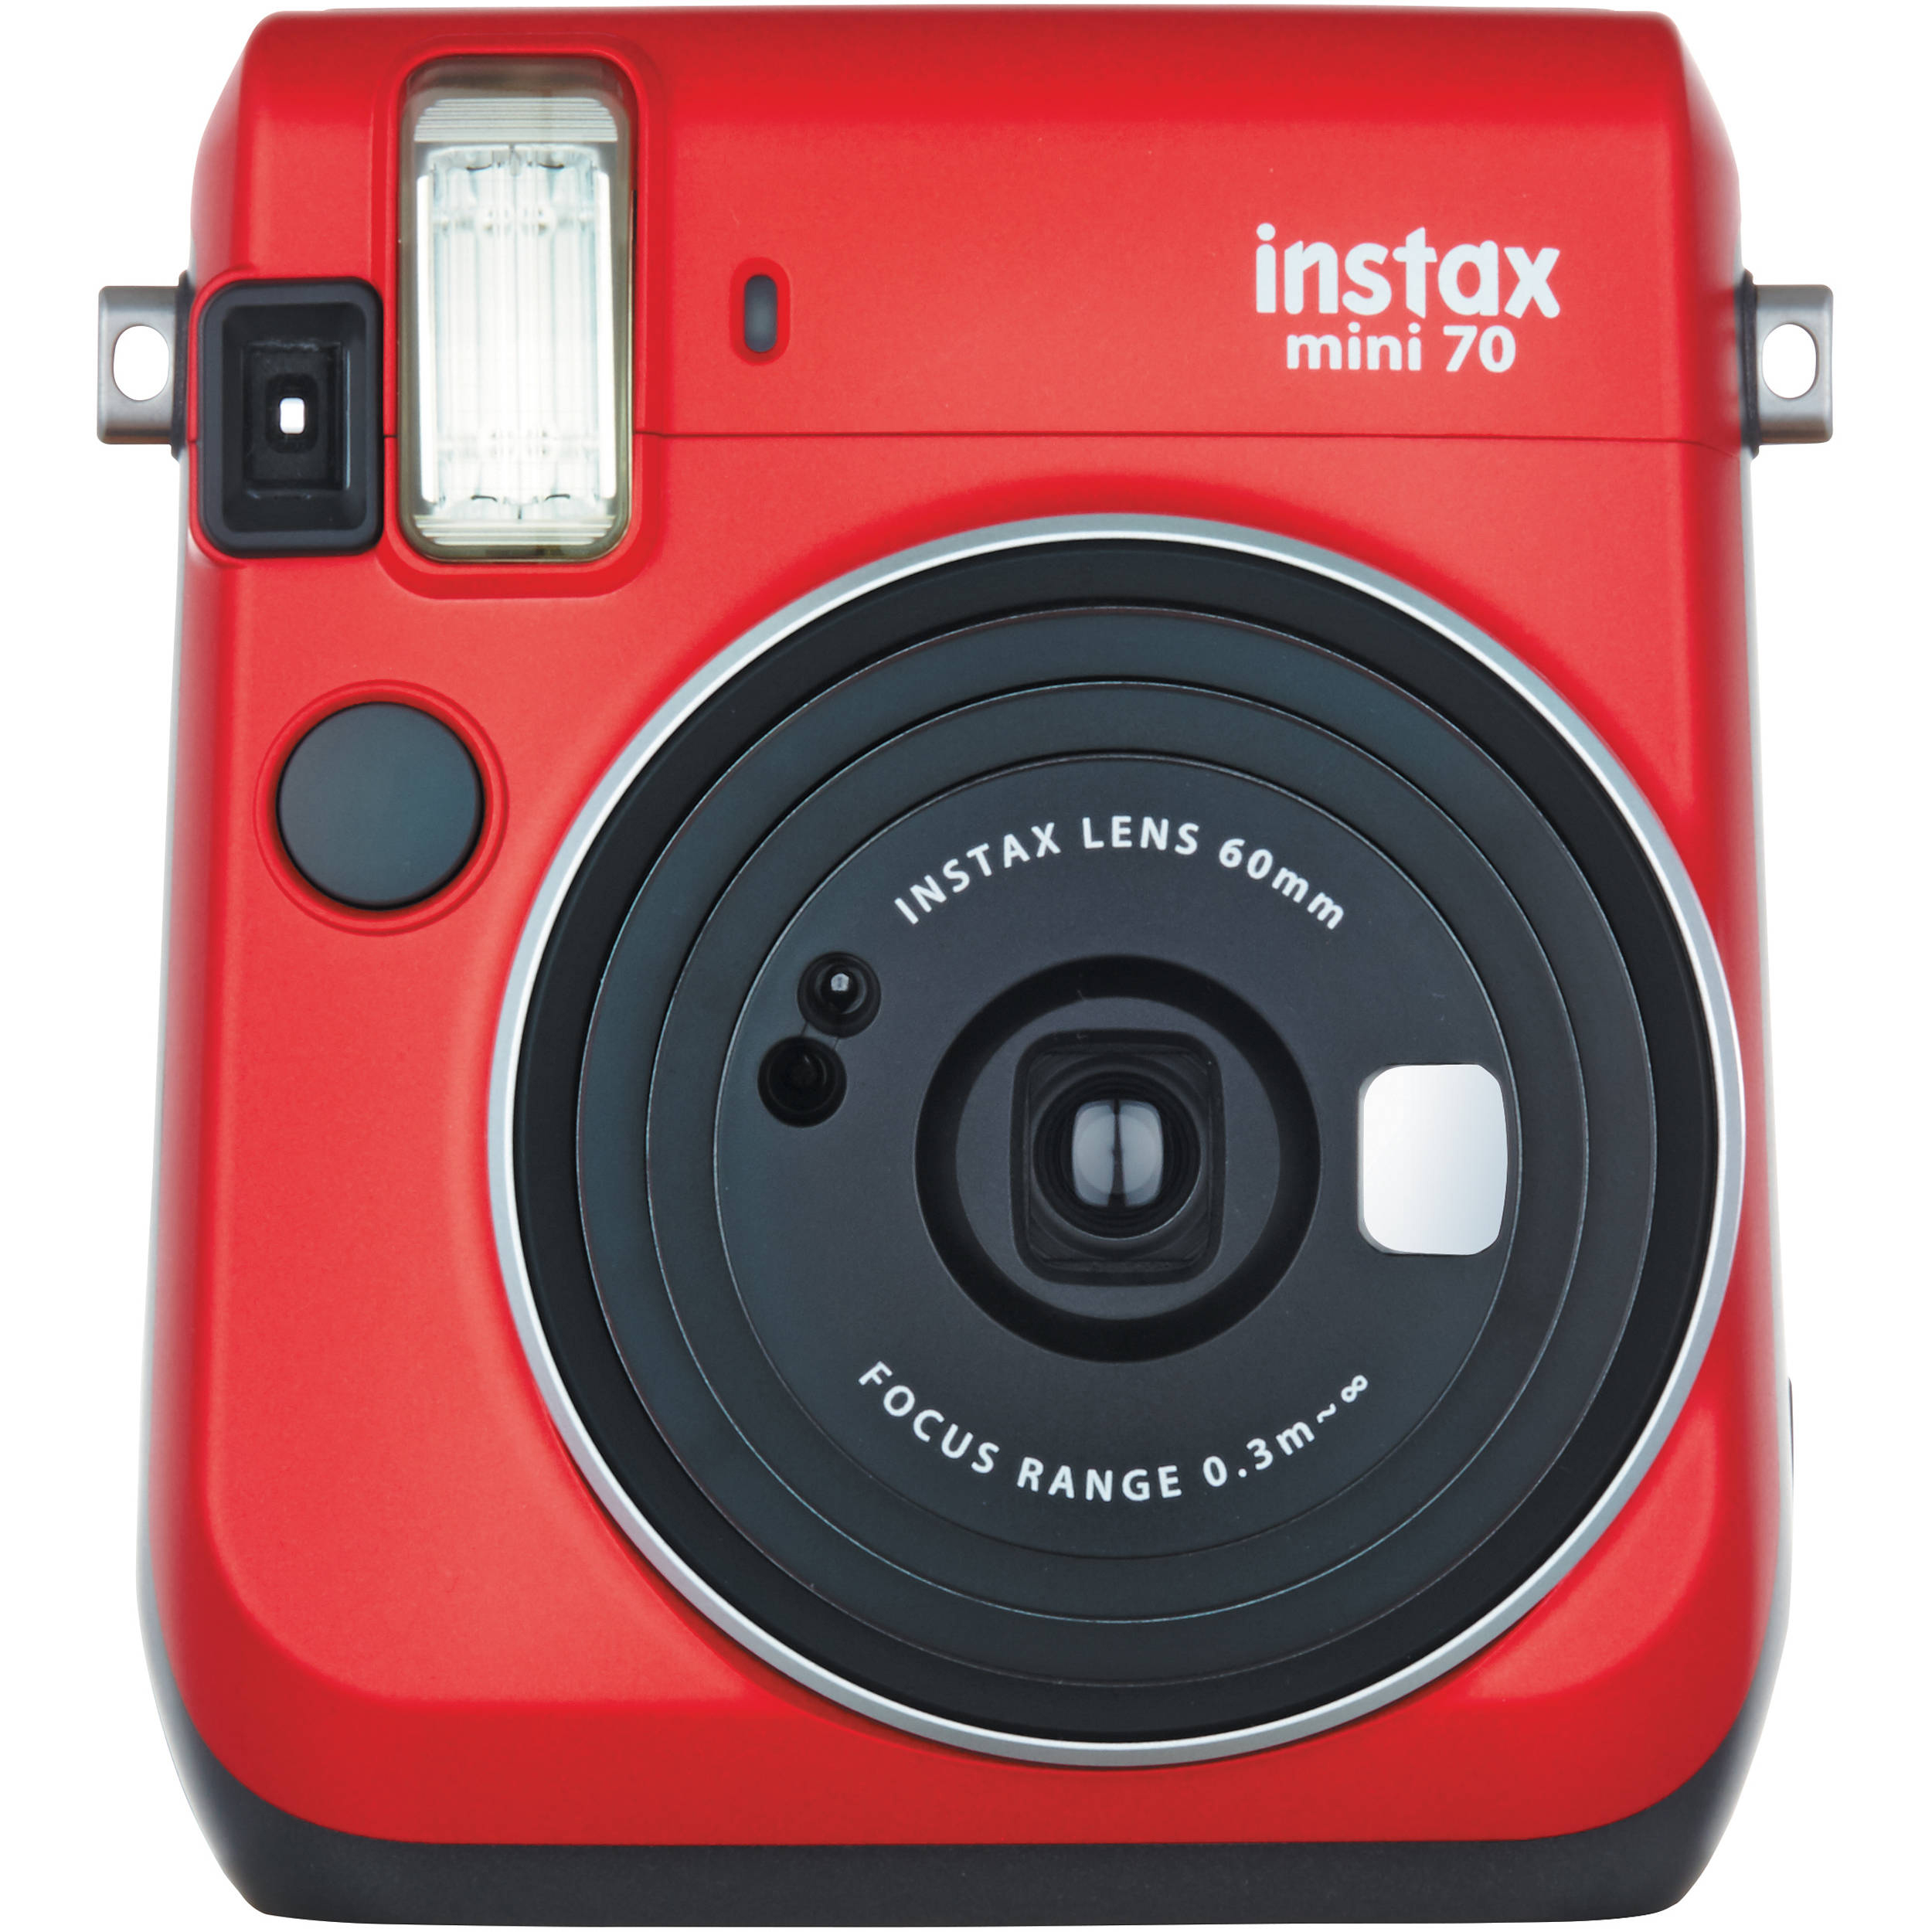 Fujifilm Instax Cameras What You Need To Know Get Started Camera Flash Circuit Digital Mini 70 Instant Film